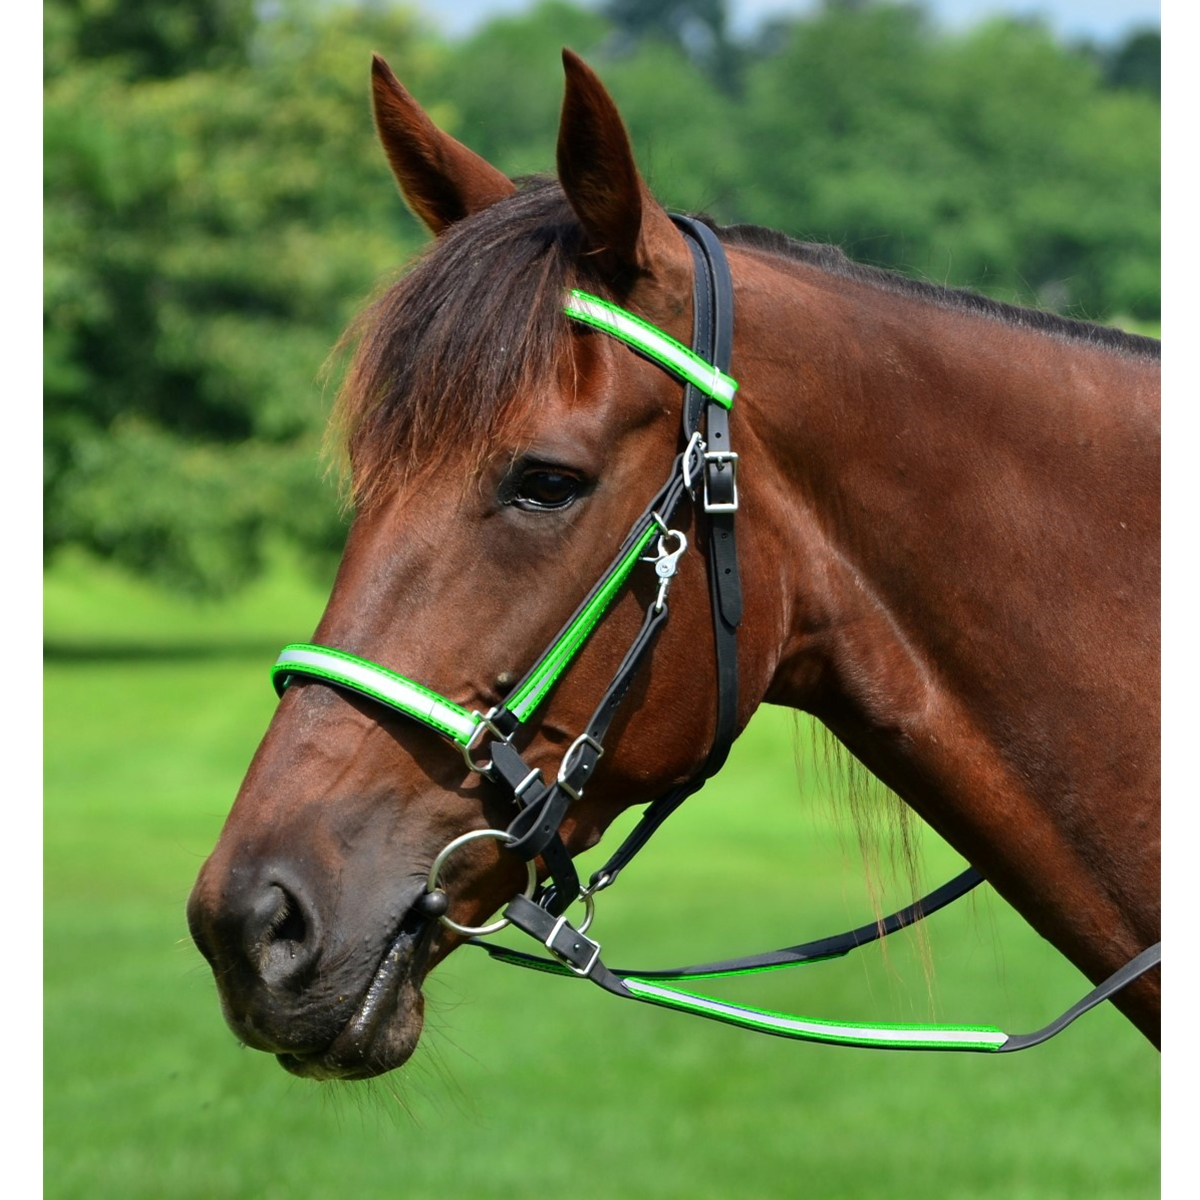 Shop Top Quality Halter Bridles With Reflective Day Glo From Two Horse Tack